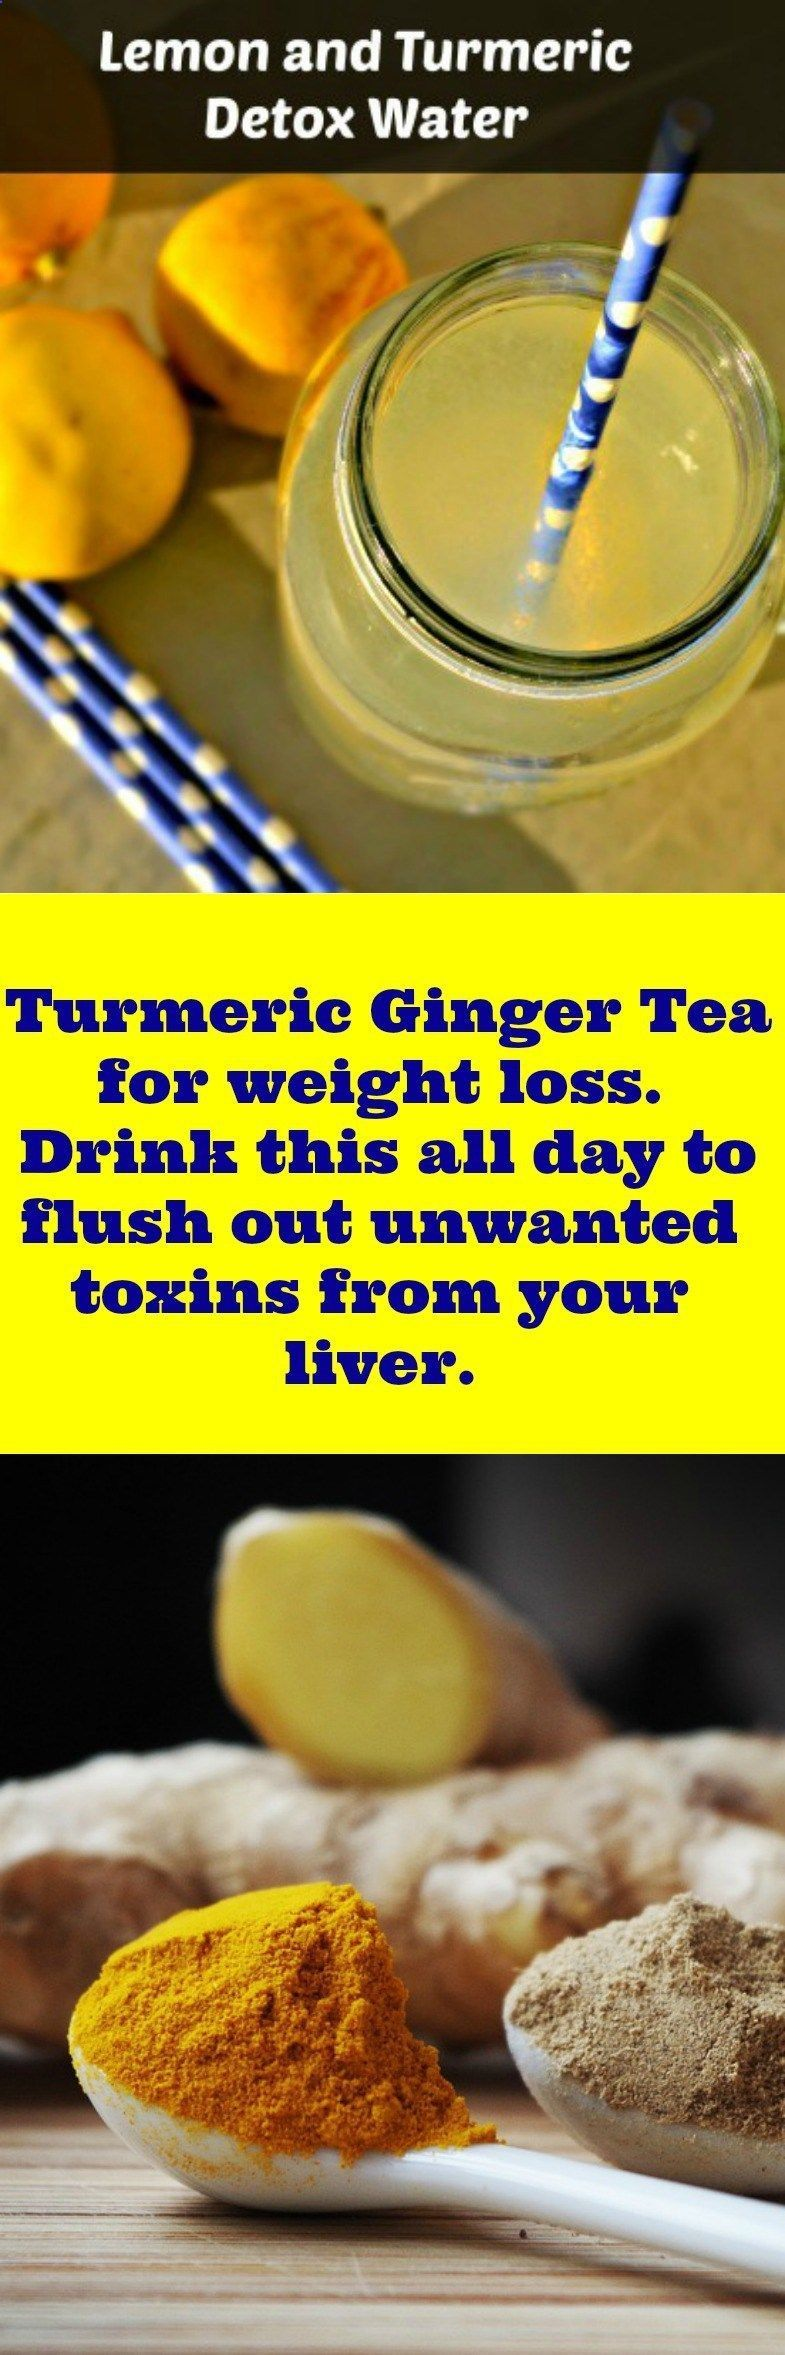 Simple way to lose weight at home picture 1